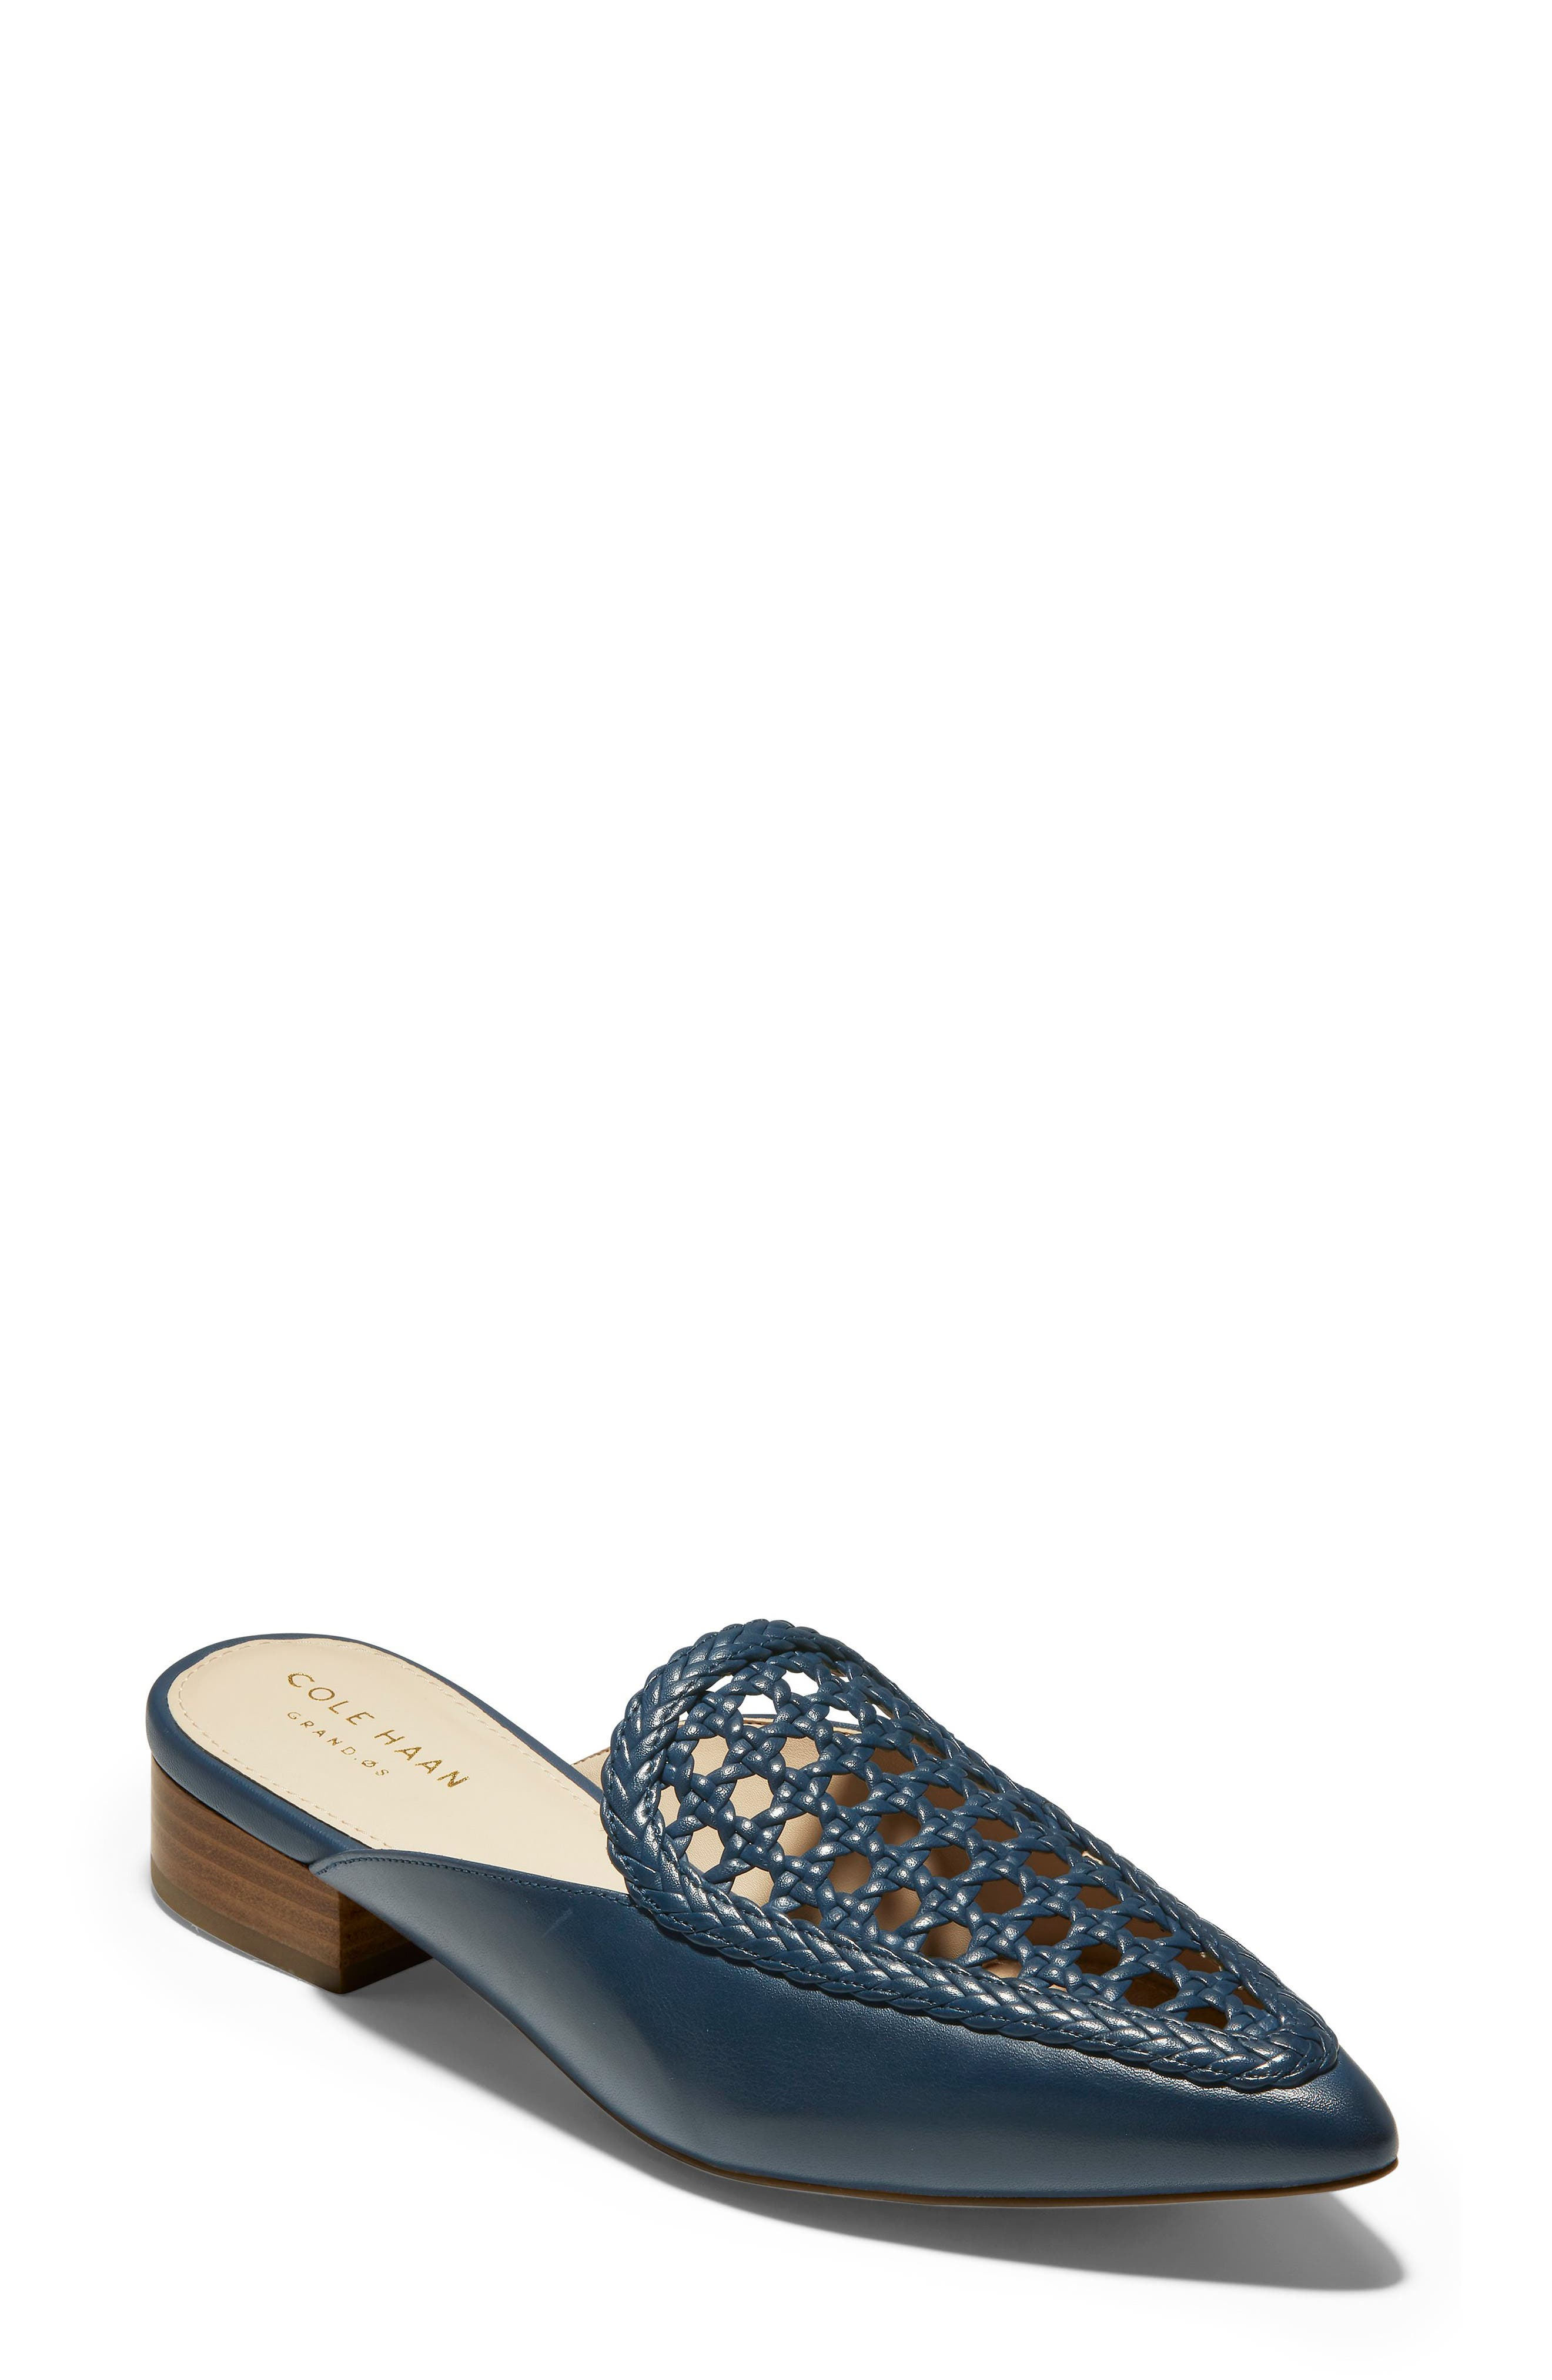 Payson Weave Mule, Main, color, MARINE BLUE LEATHER